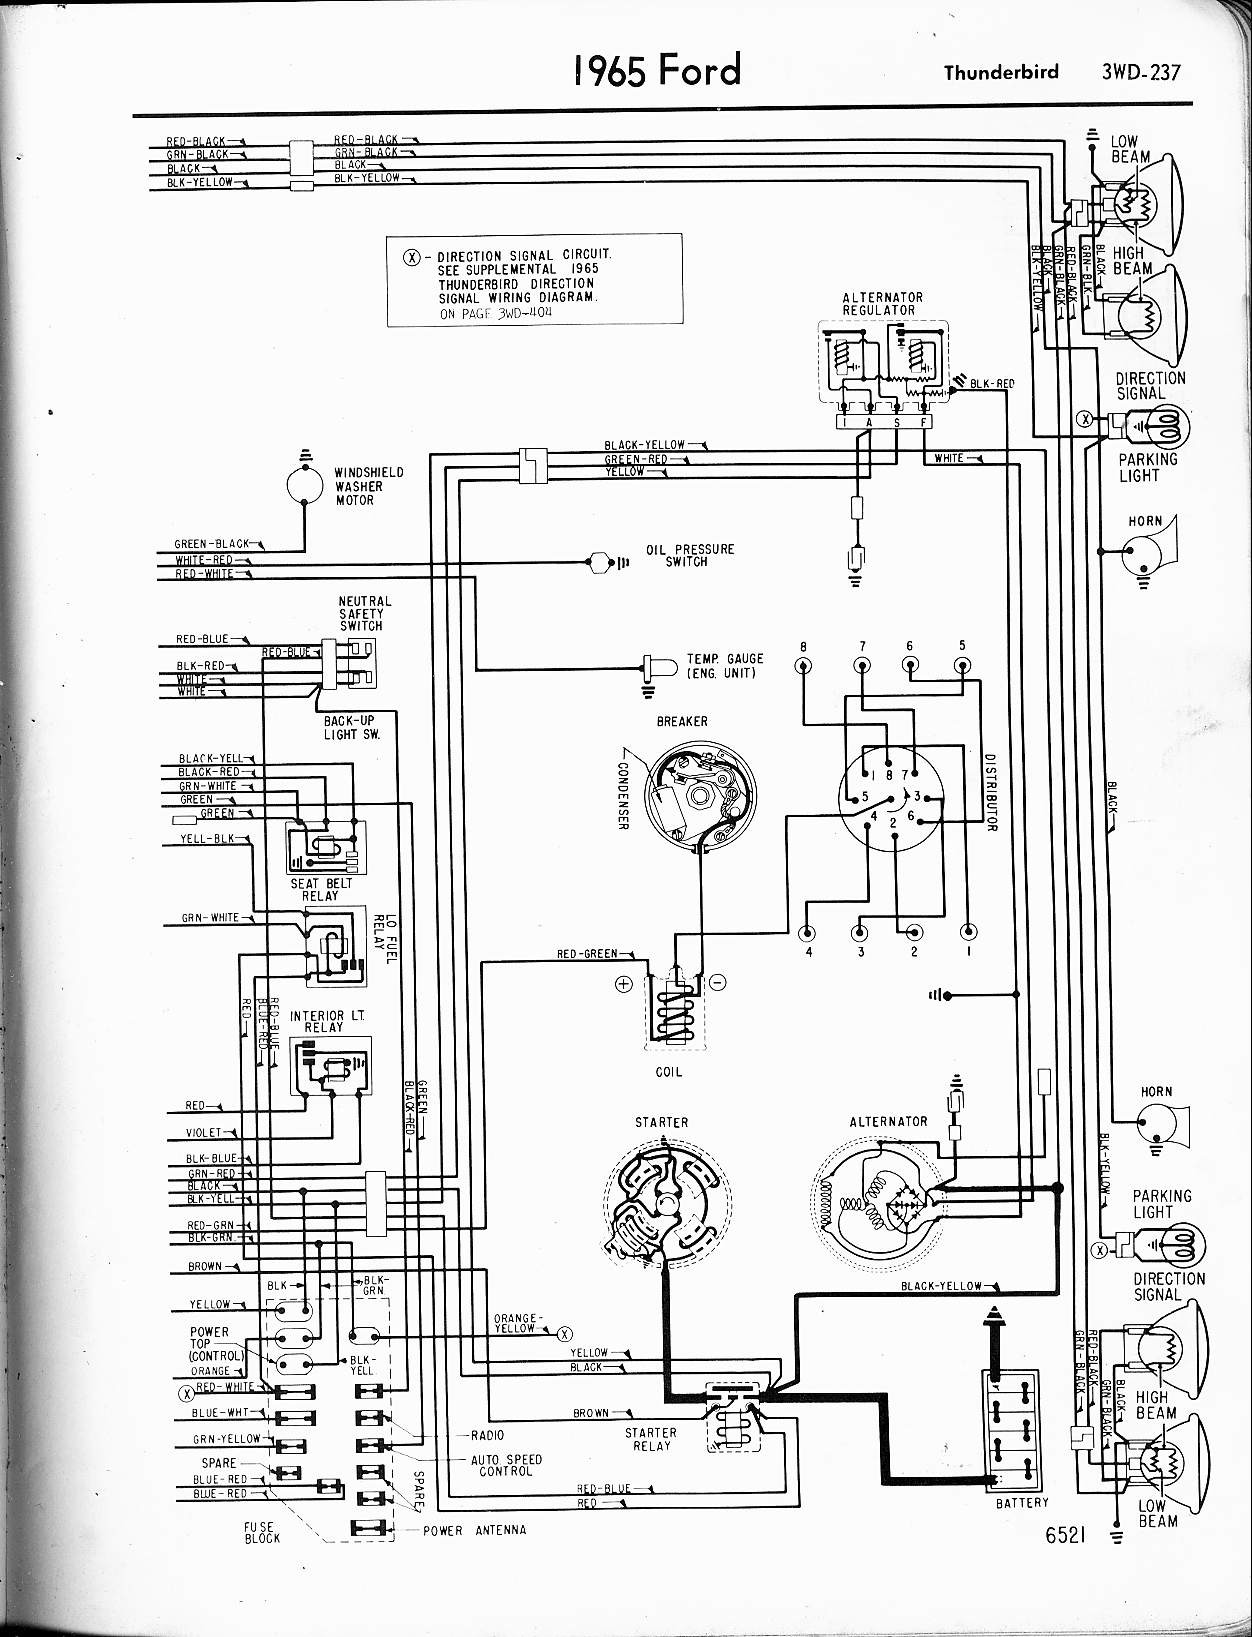 1966 Ford Econoline Wiring Diagrams Electrical Van Diagram Thunderbird Electric Trusted U2022 E 150 Fuse Box